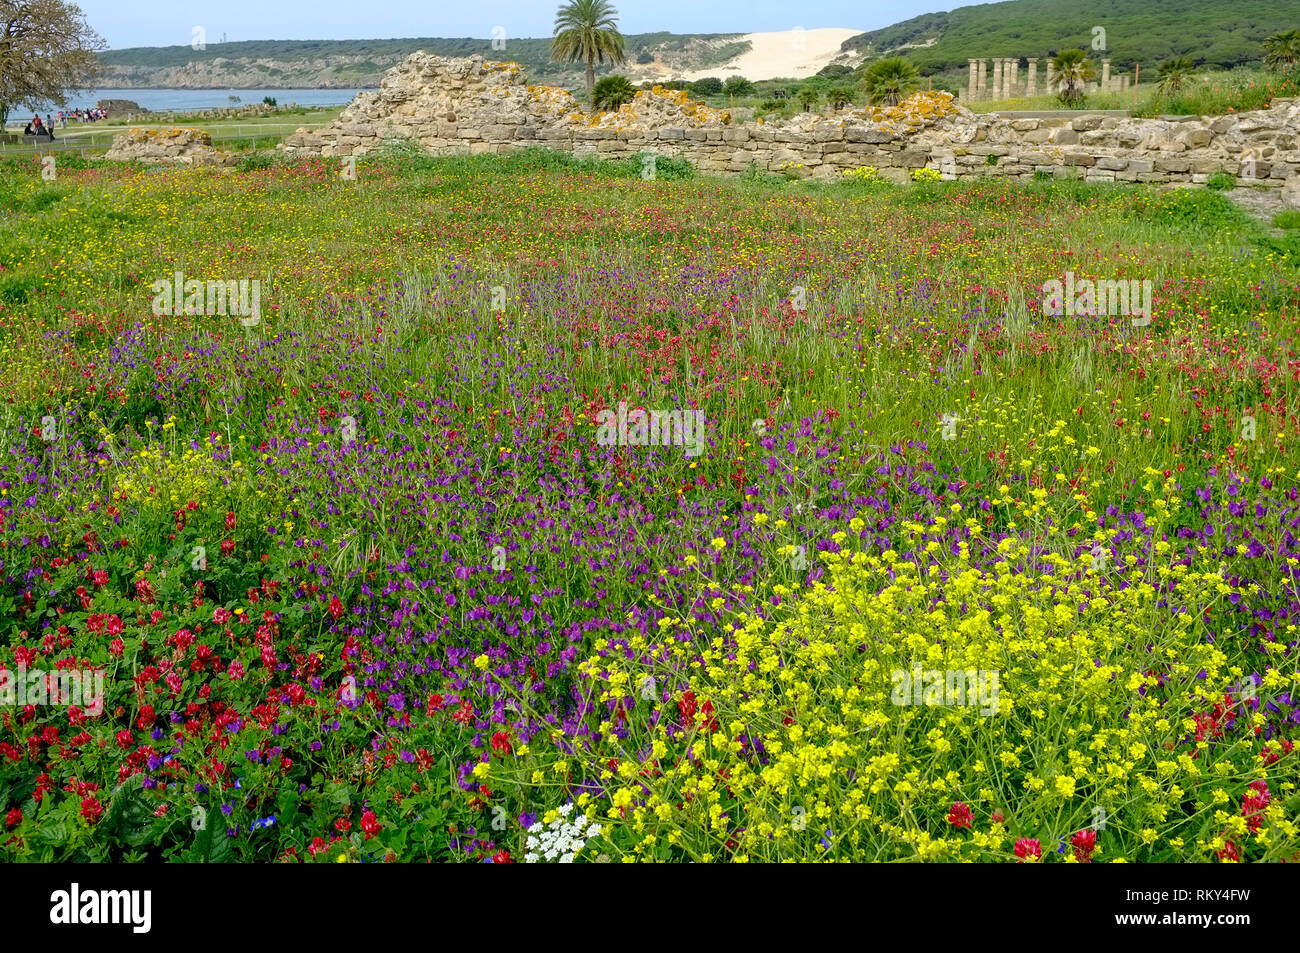 A view of the lush wild flower meadow and Roman ruins of Baelo Claudia, behind the beach in Bolonia Bay, Costa de la Luz, Spain. - Stock Image